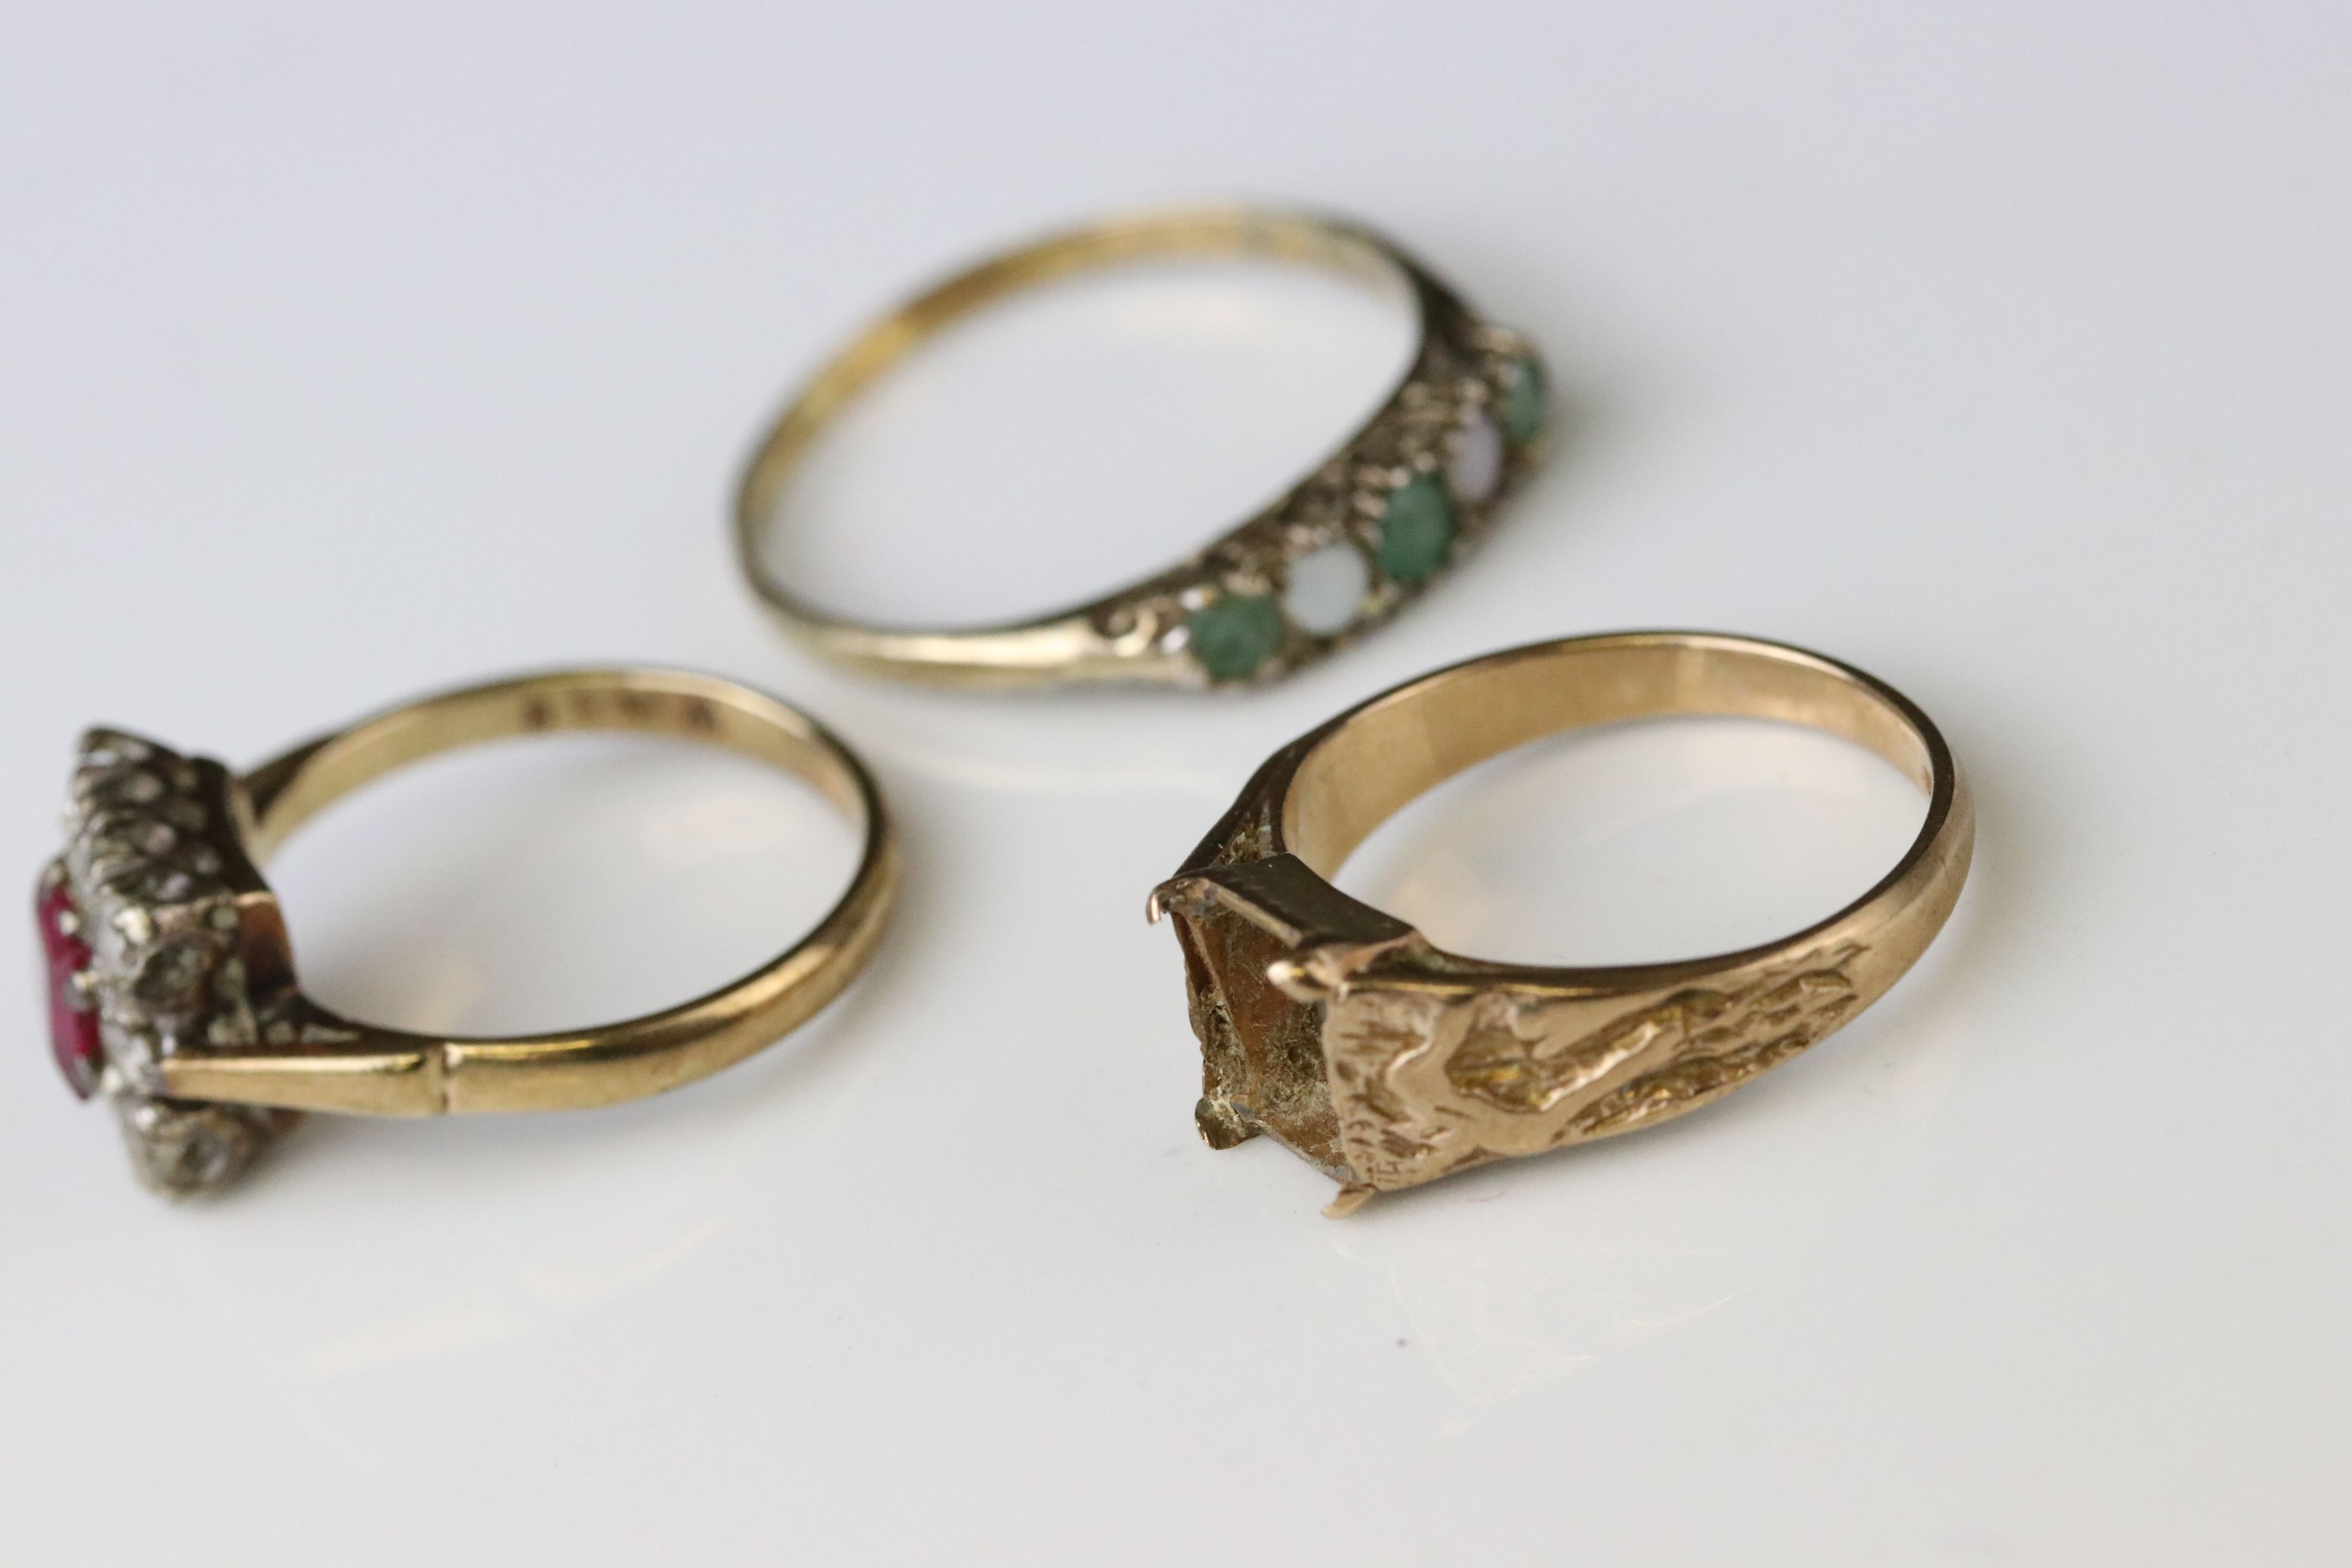 Two 9ct gold dress rings (one af) together with a 9ct gold mount (stone missing) (3) - Image 5 of 5